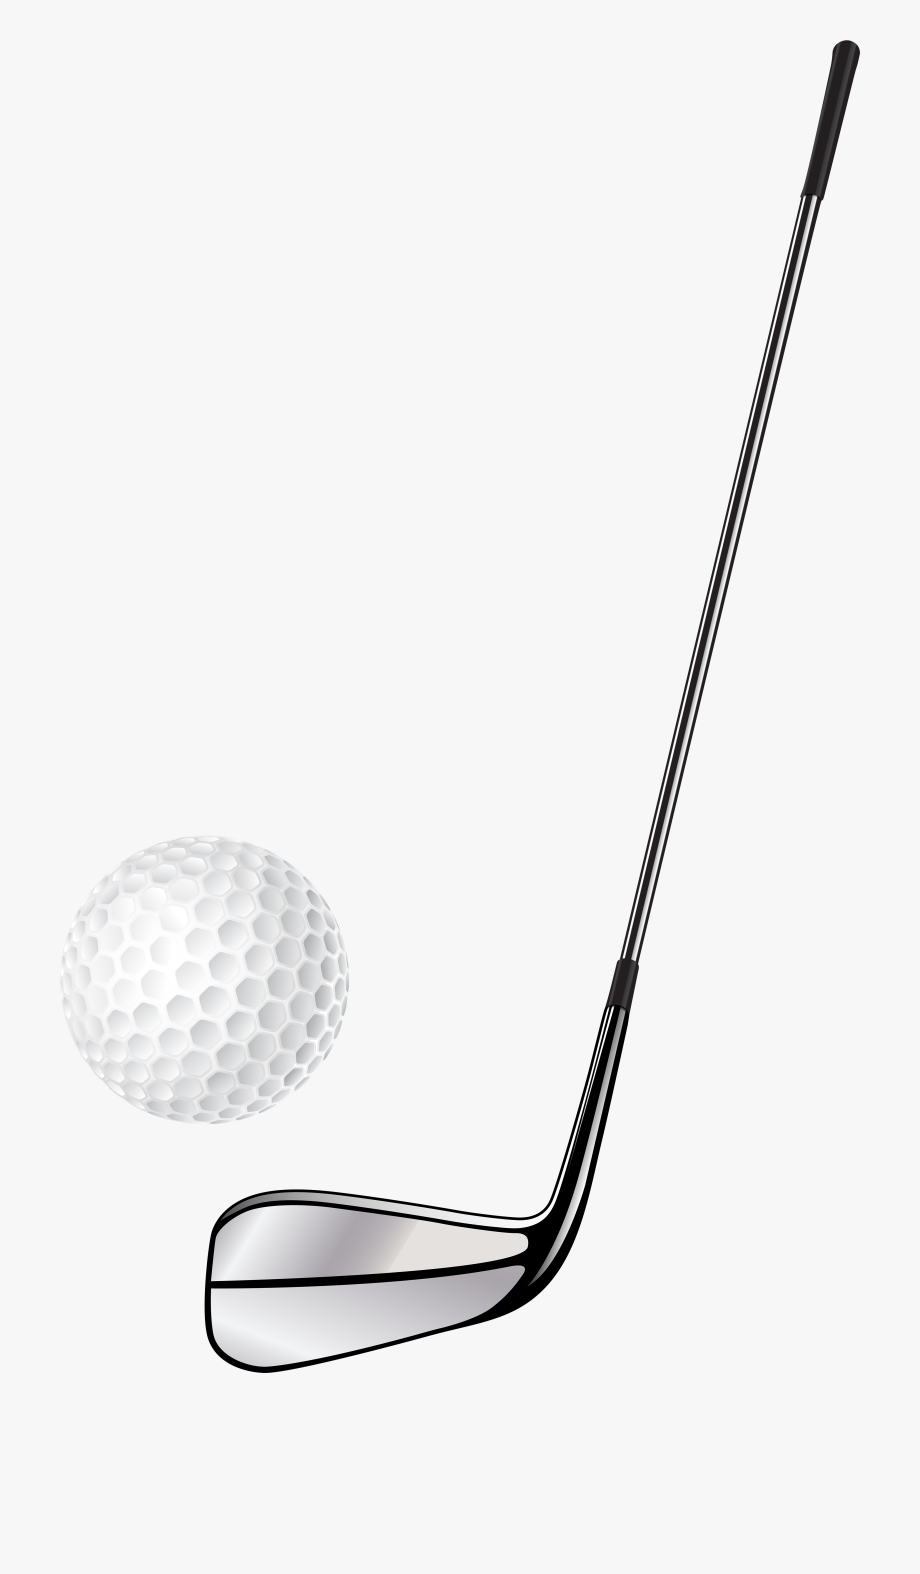 Golf Club Stick And Ball Png Clip Art.